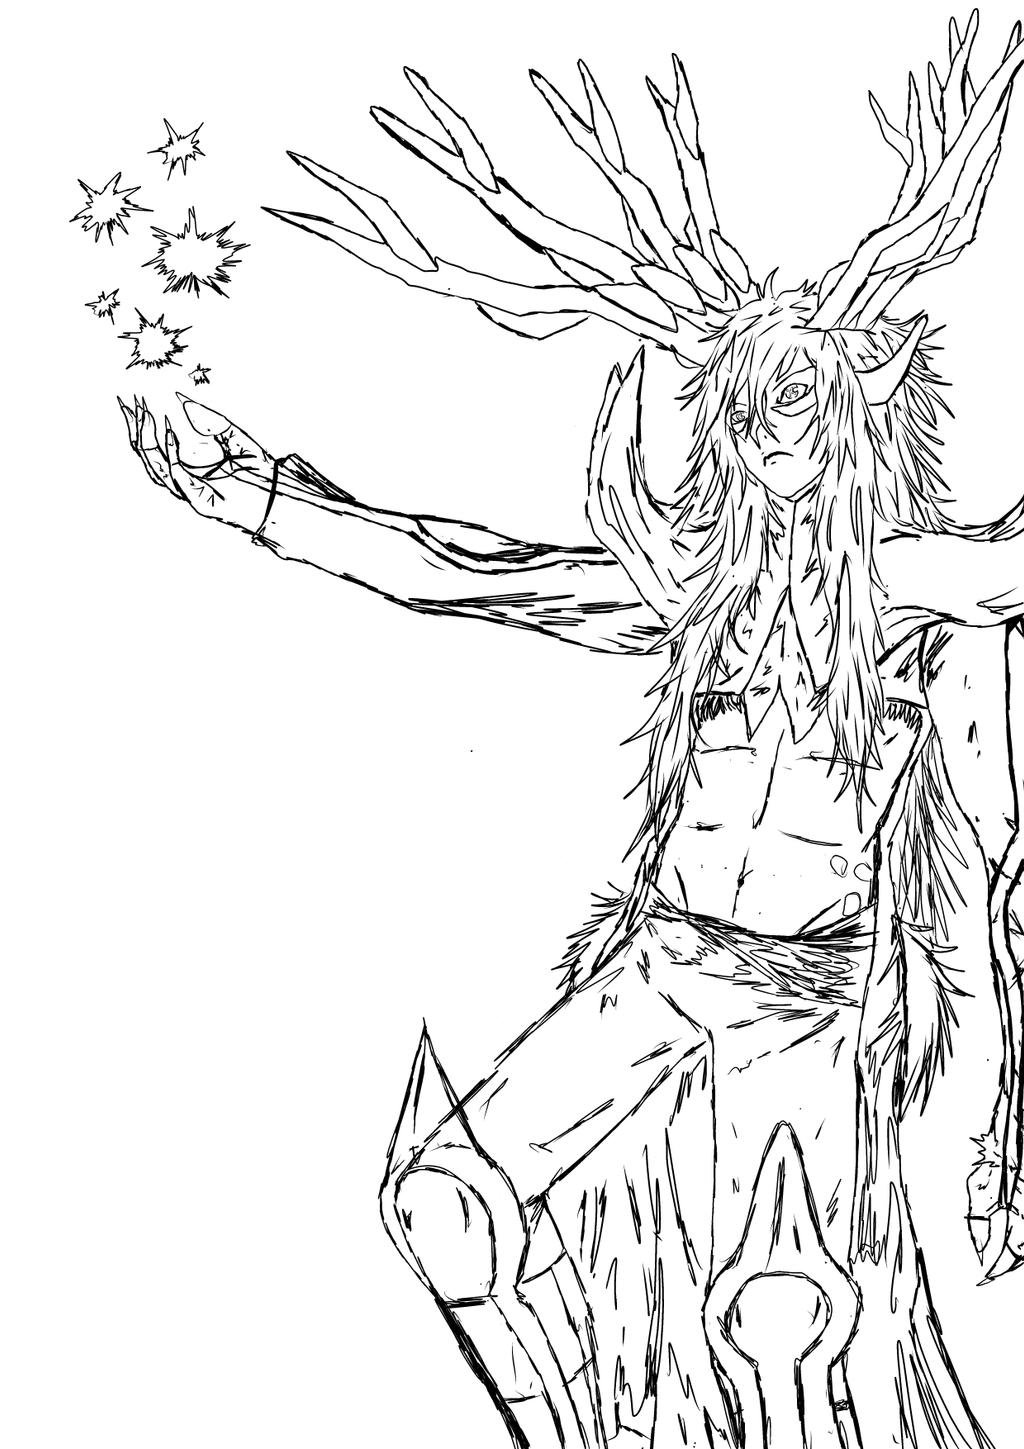 Pokemon Xerneas And Yveltal Coloring Pages Coloring Pages Coloring Pages Xerneas